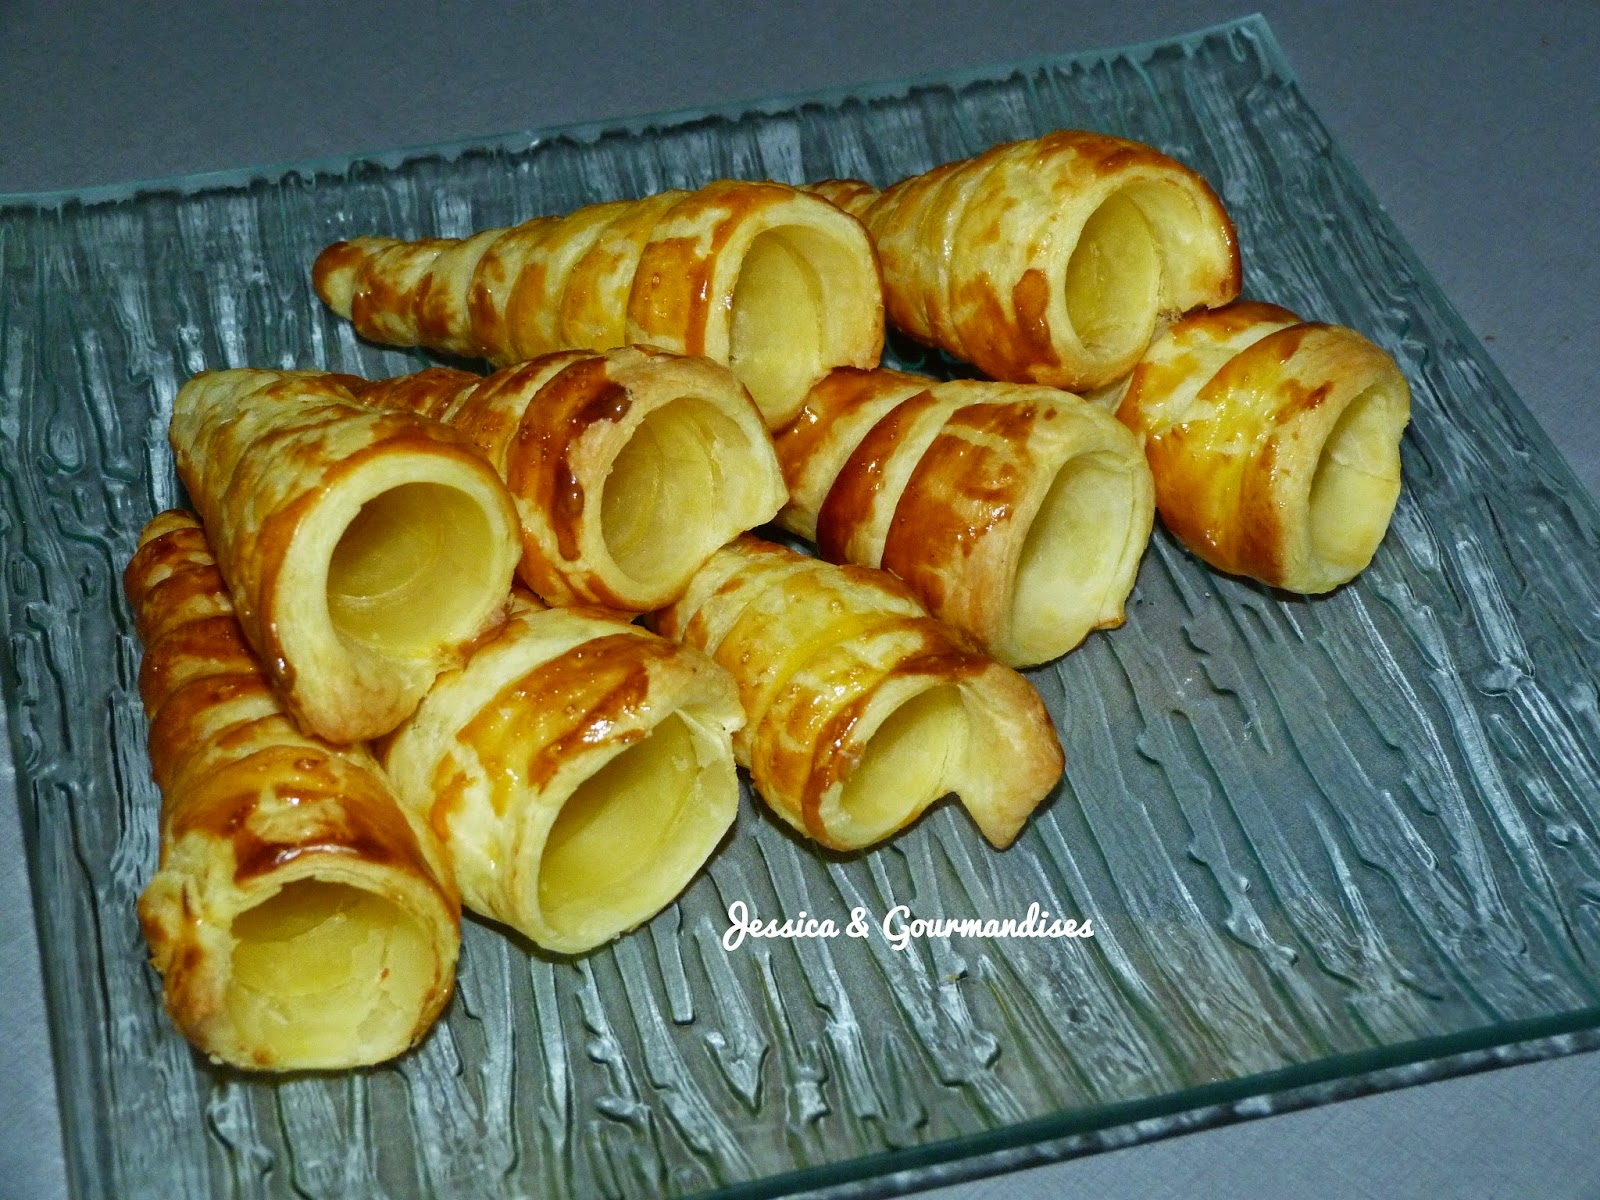 gourmandises cornets au fromage